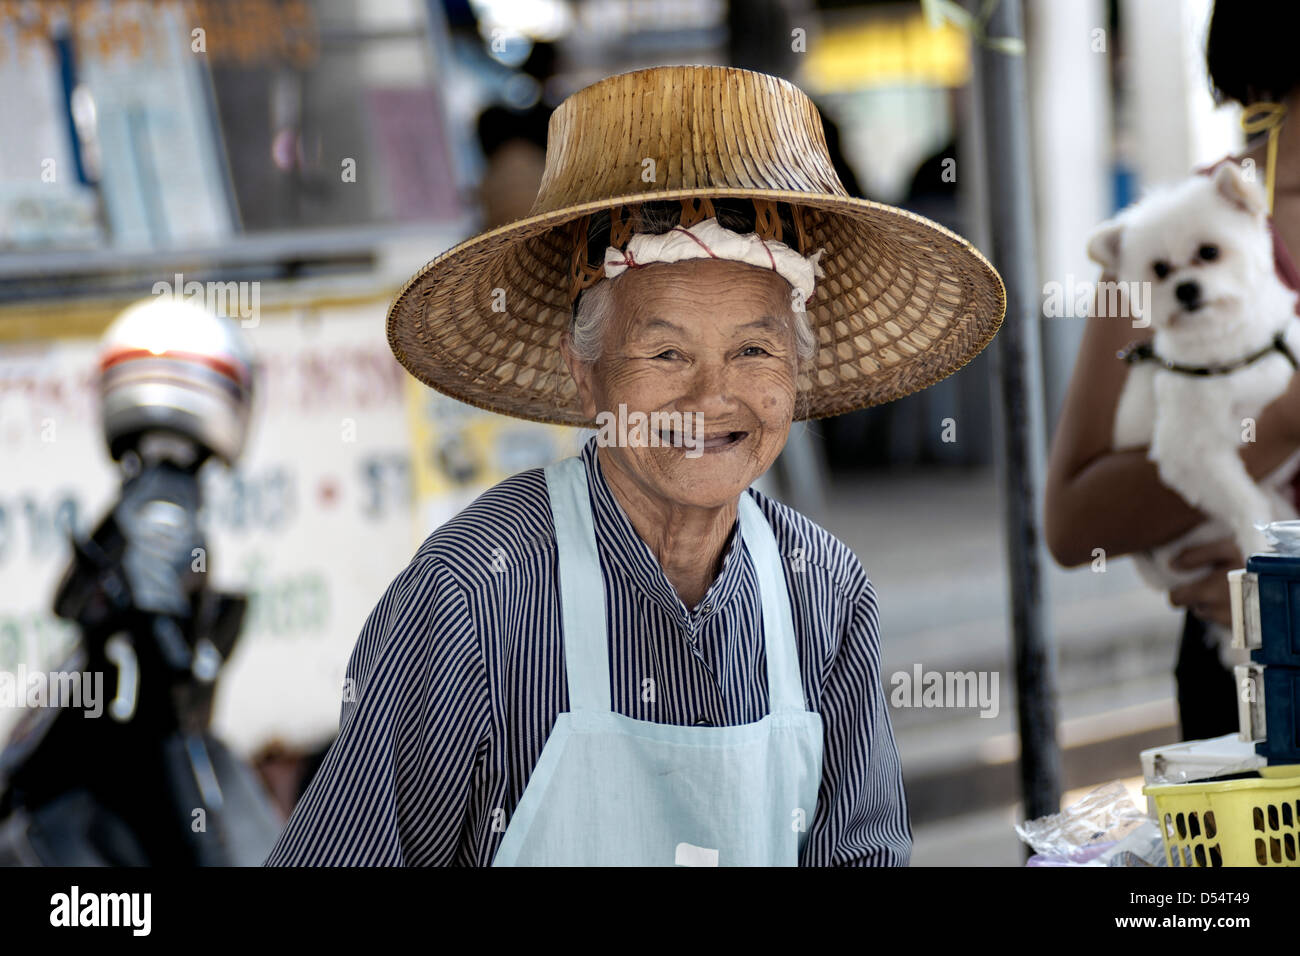 Elderly woman street food vendor, happy and smiling at her work. Thailand Southeast Asia - Stock Image